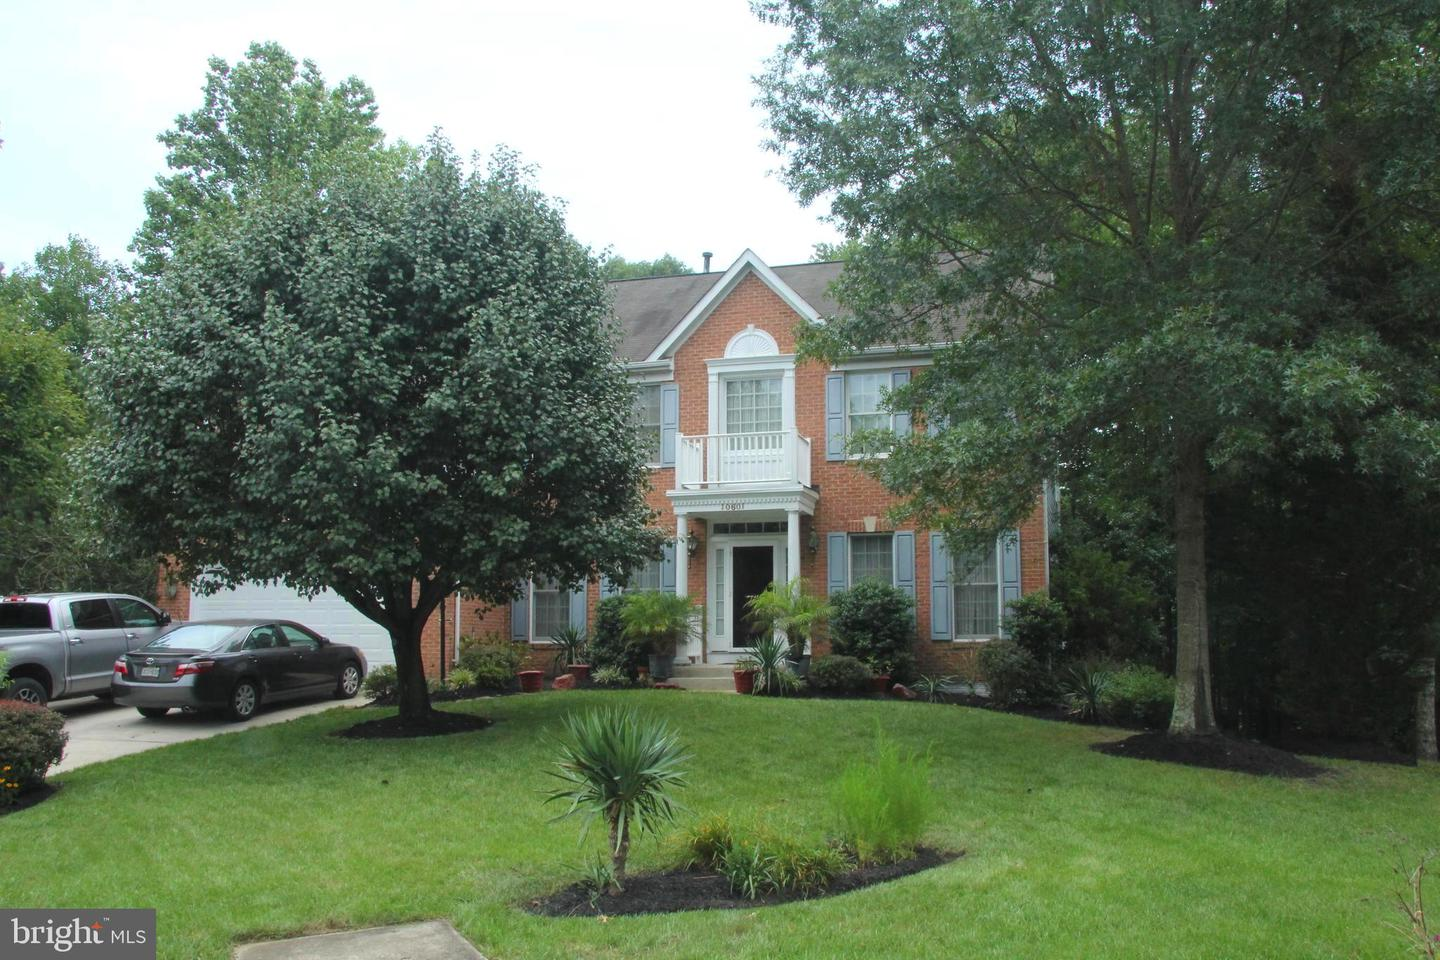 10601 WOOD POINTE COURT, GLENN DALE, Maryland